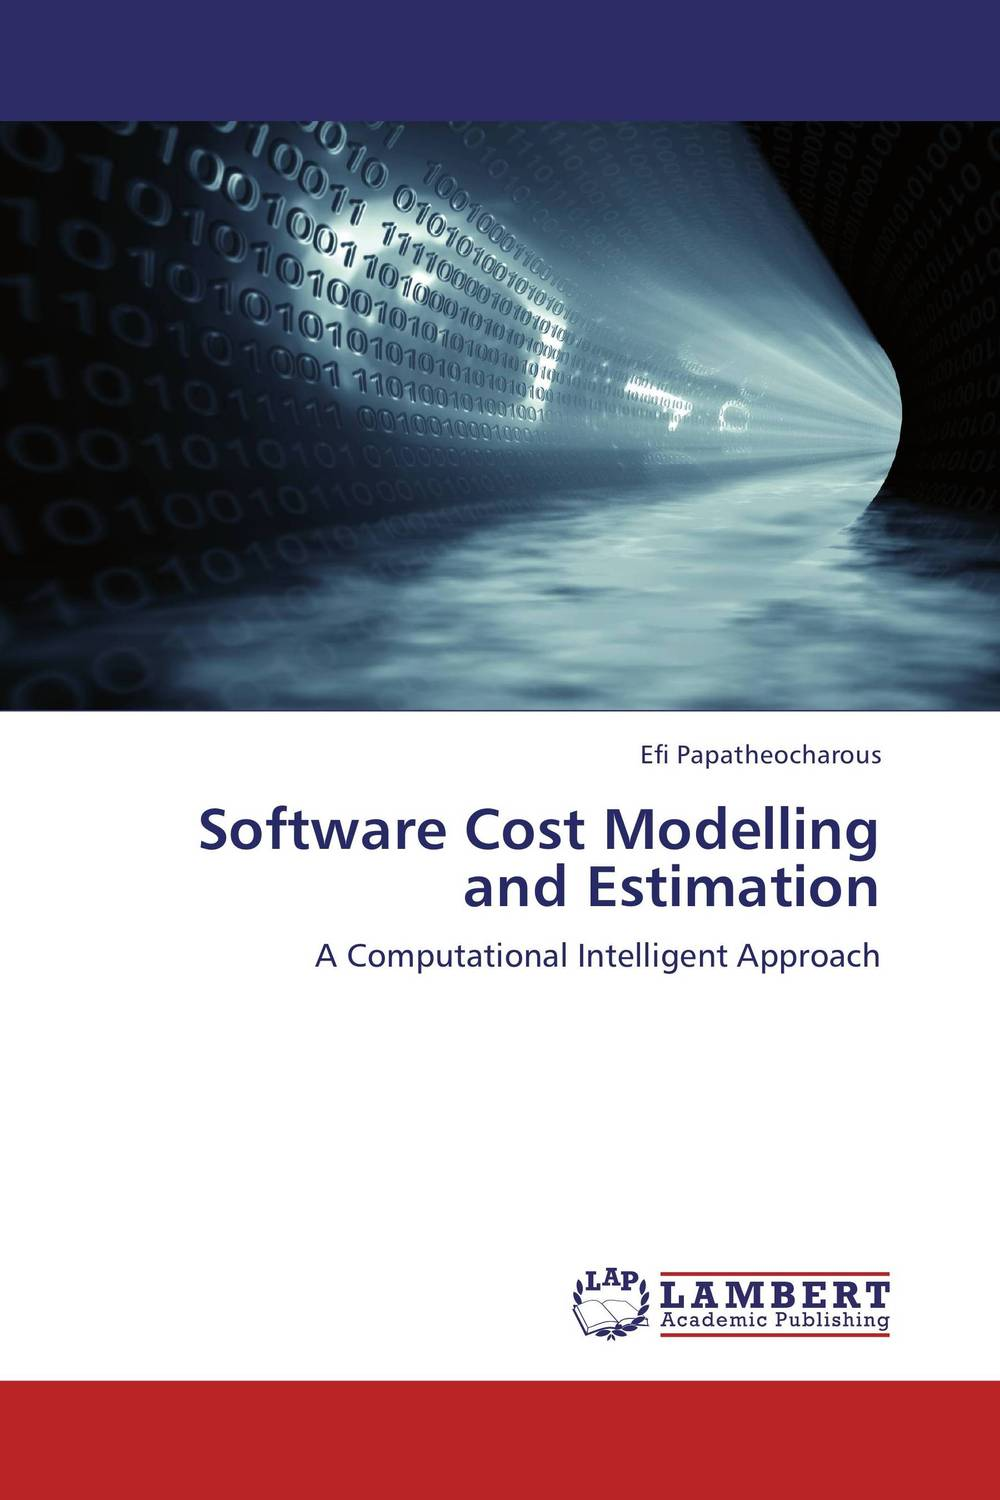 Software Cost Modelling and Estimation web personalization models using computational intelligence